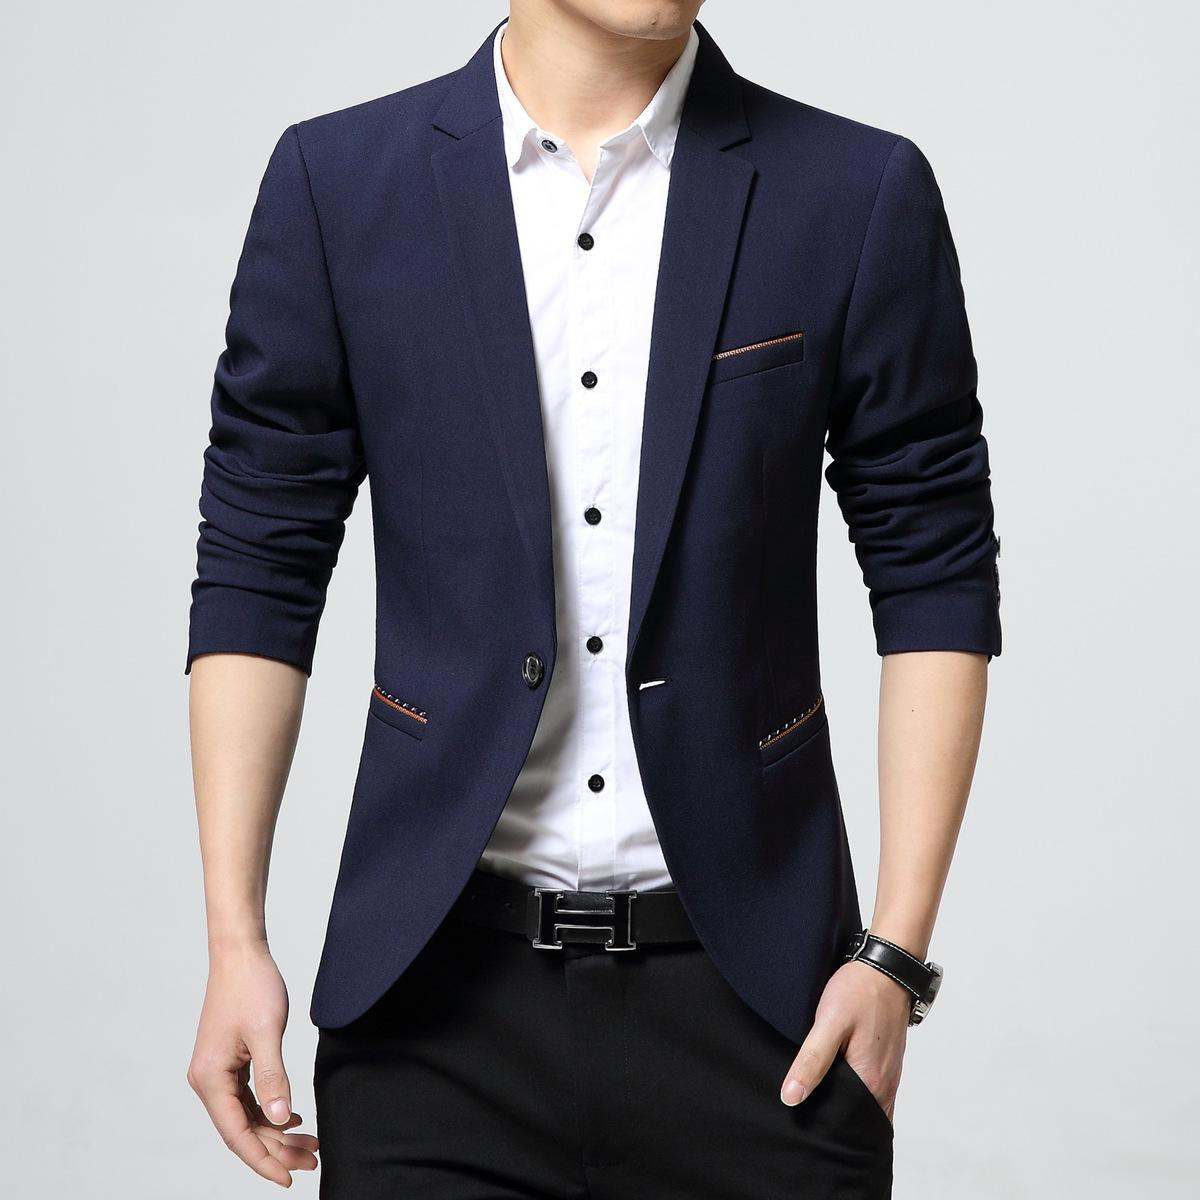 Latest Coat Design Wedding Dress For Men Casual Blazer Suit Jacket ...